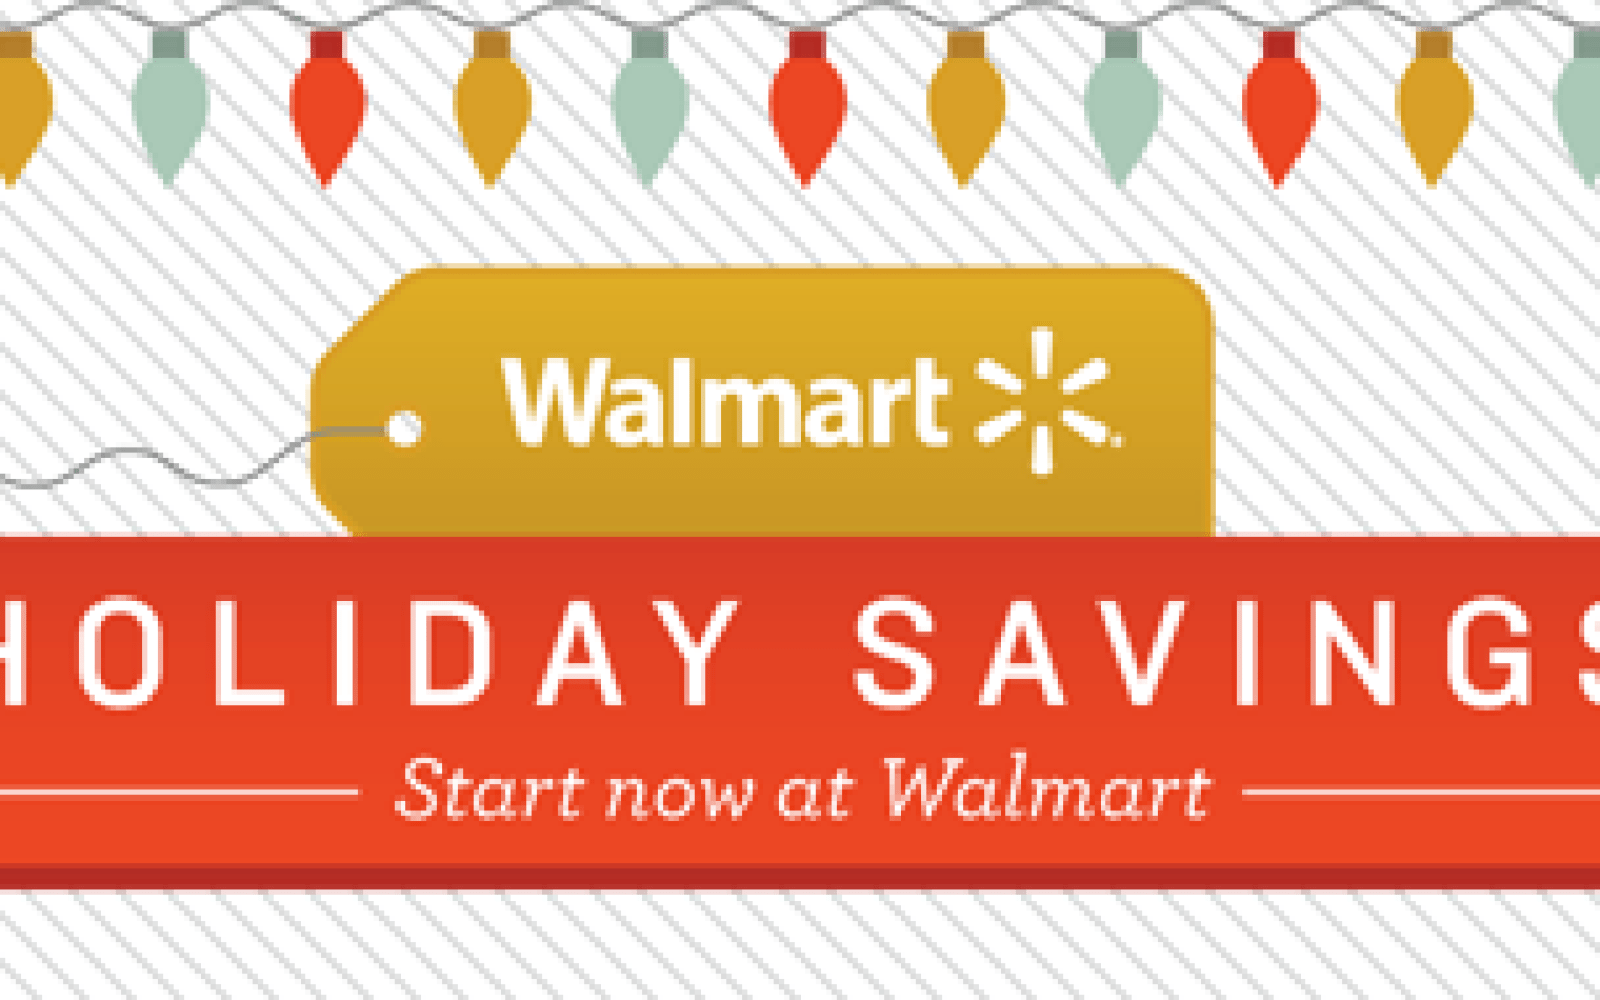 Walmart\'s Holiday Savings officially kick off tomorrow with more ...